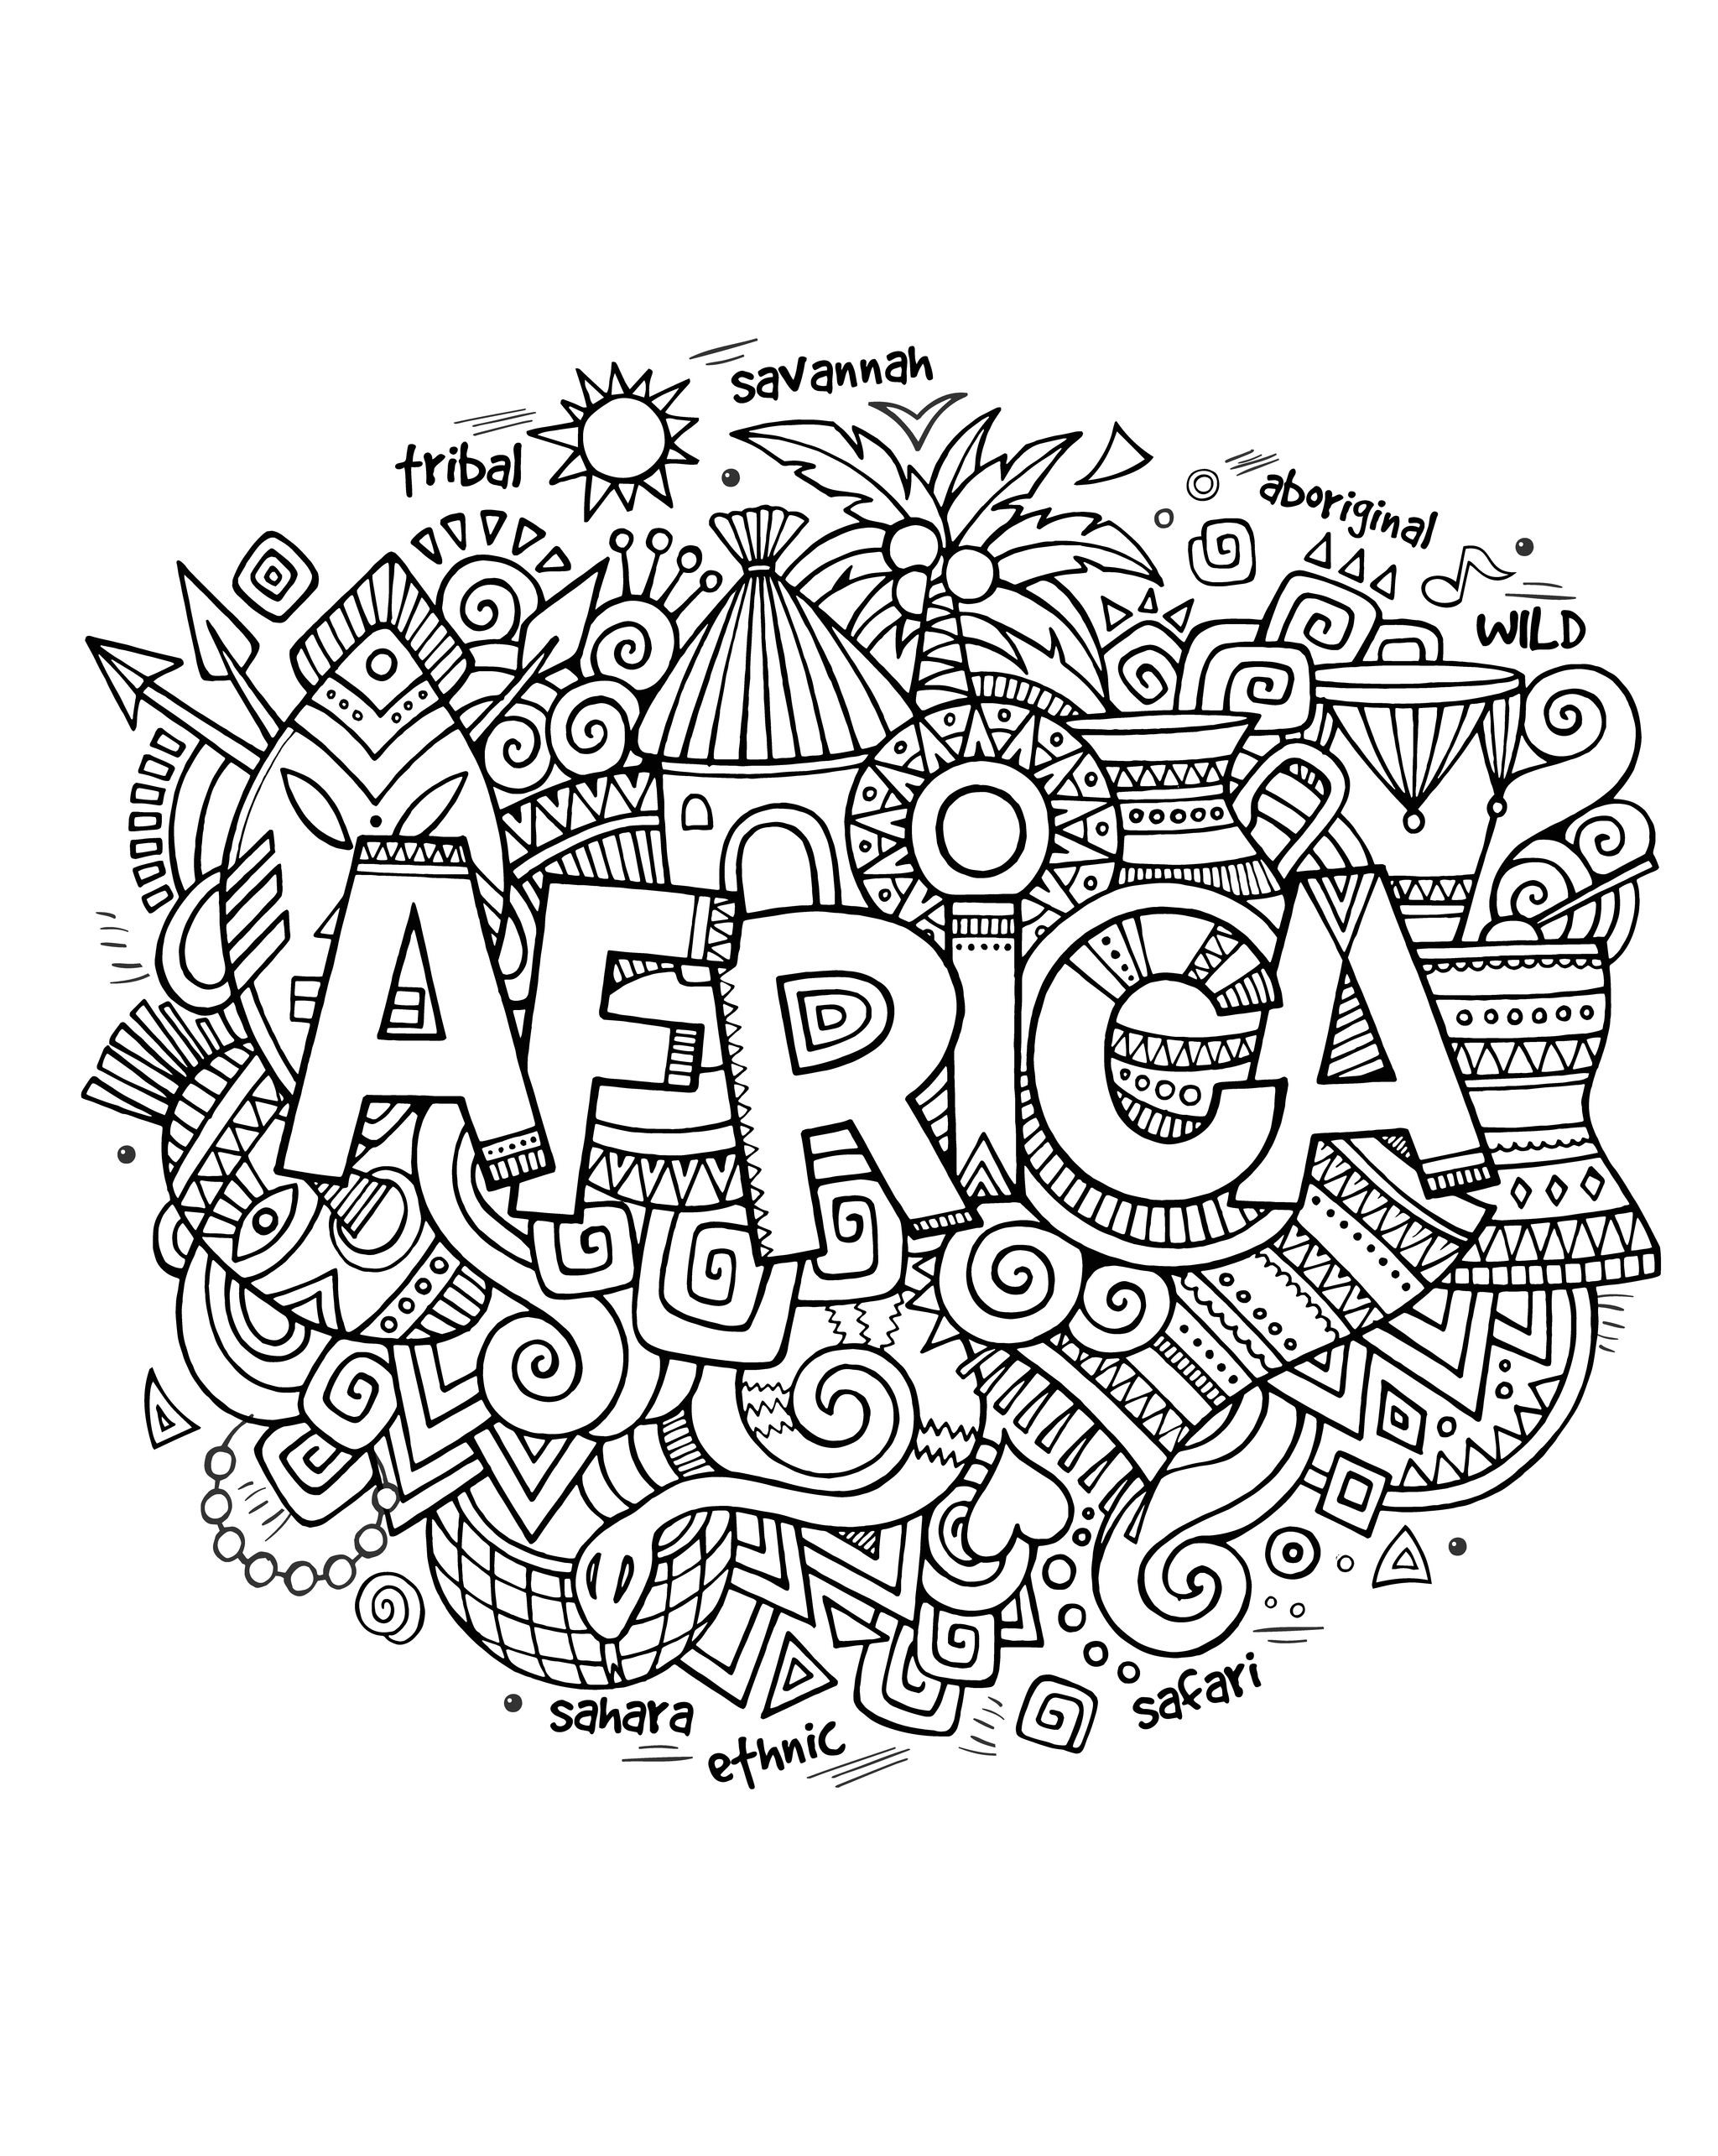 Drawing with the word 'Africa' and a lot of symbols of this continent around